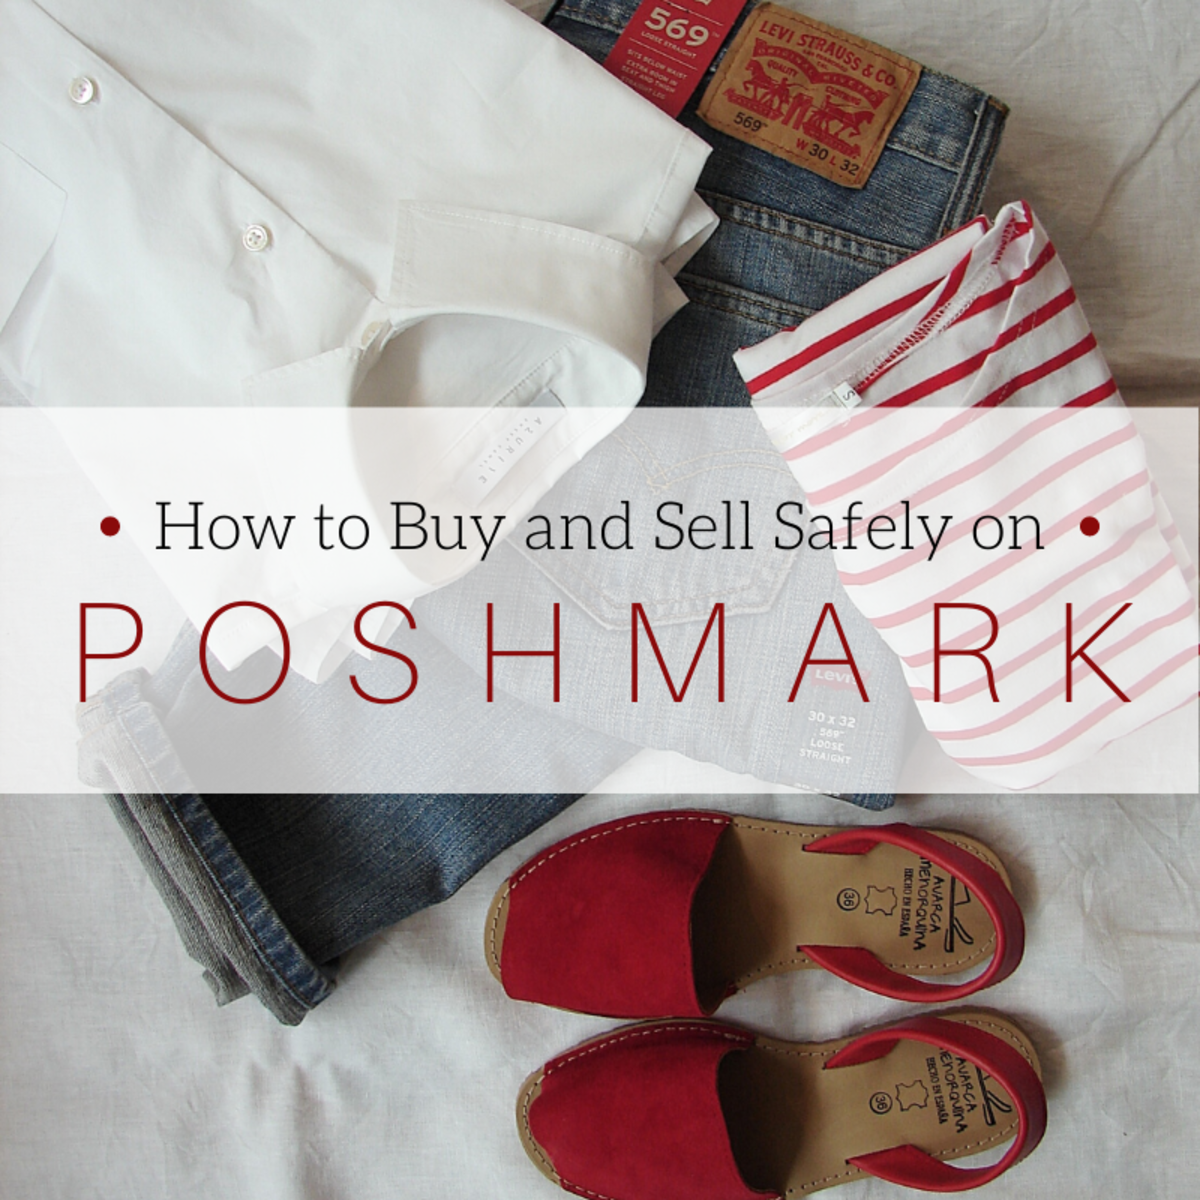 Poshmark is a safe place to shop for gently used styles at affordable prices online.